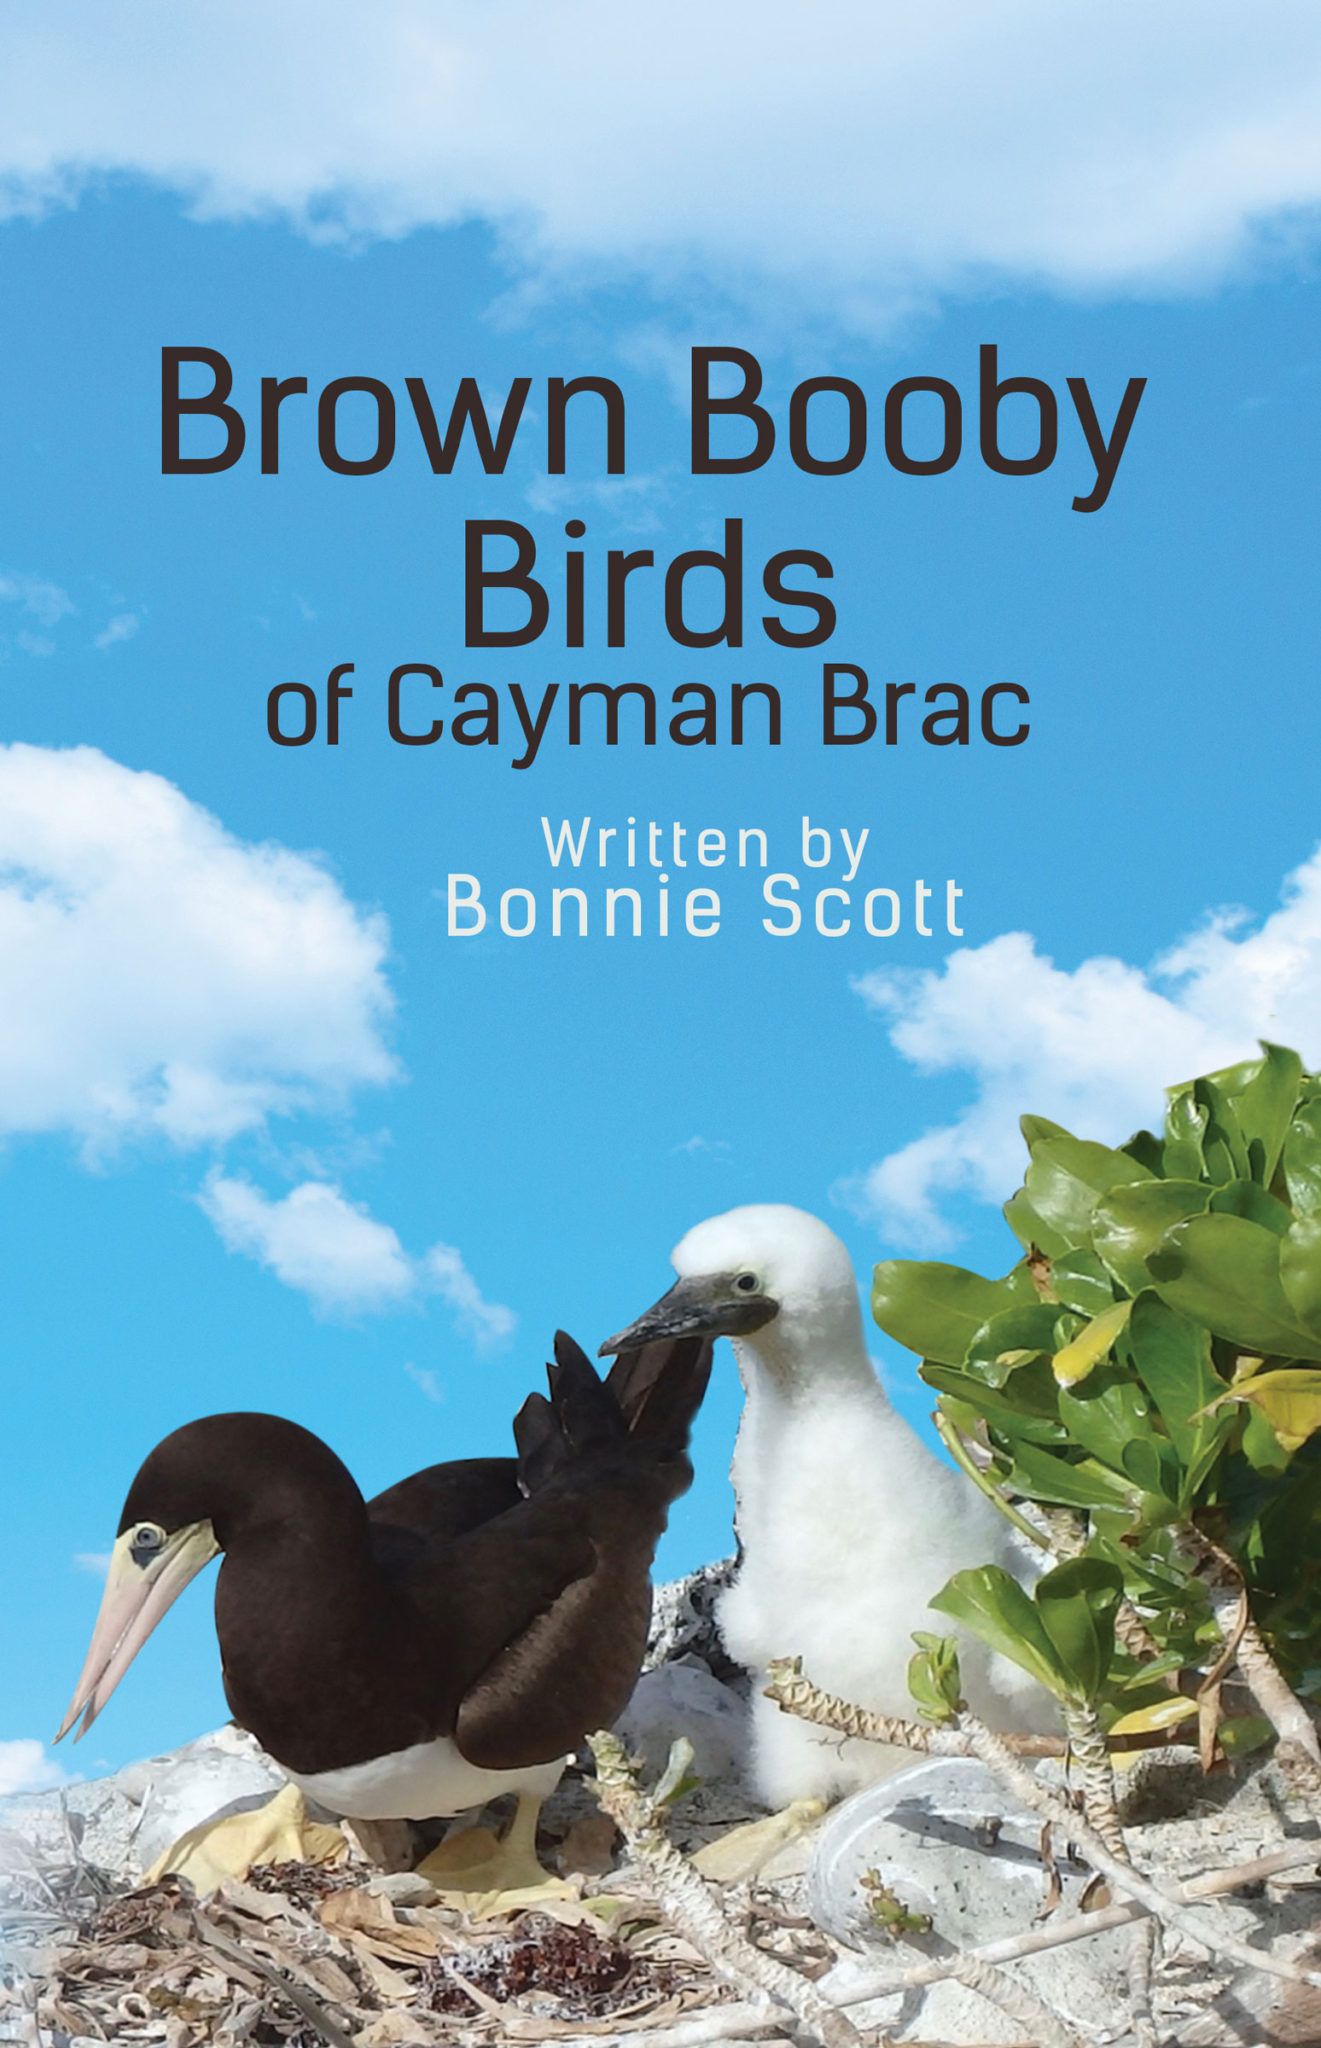 A book cover with a blue sky, white clouds and brown booby birds on the beach